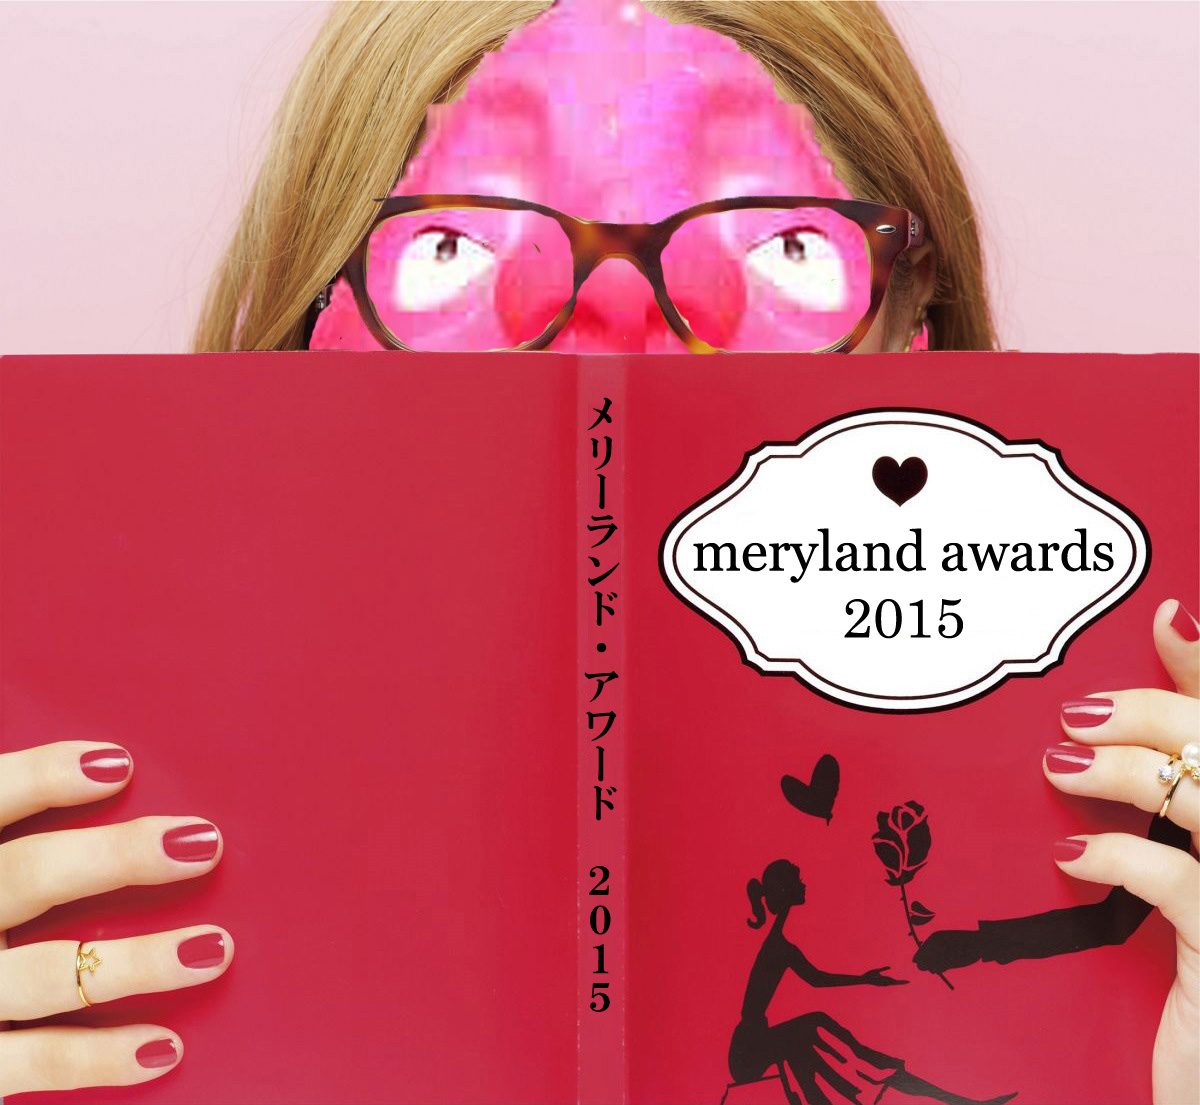 meryland awards 2015